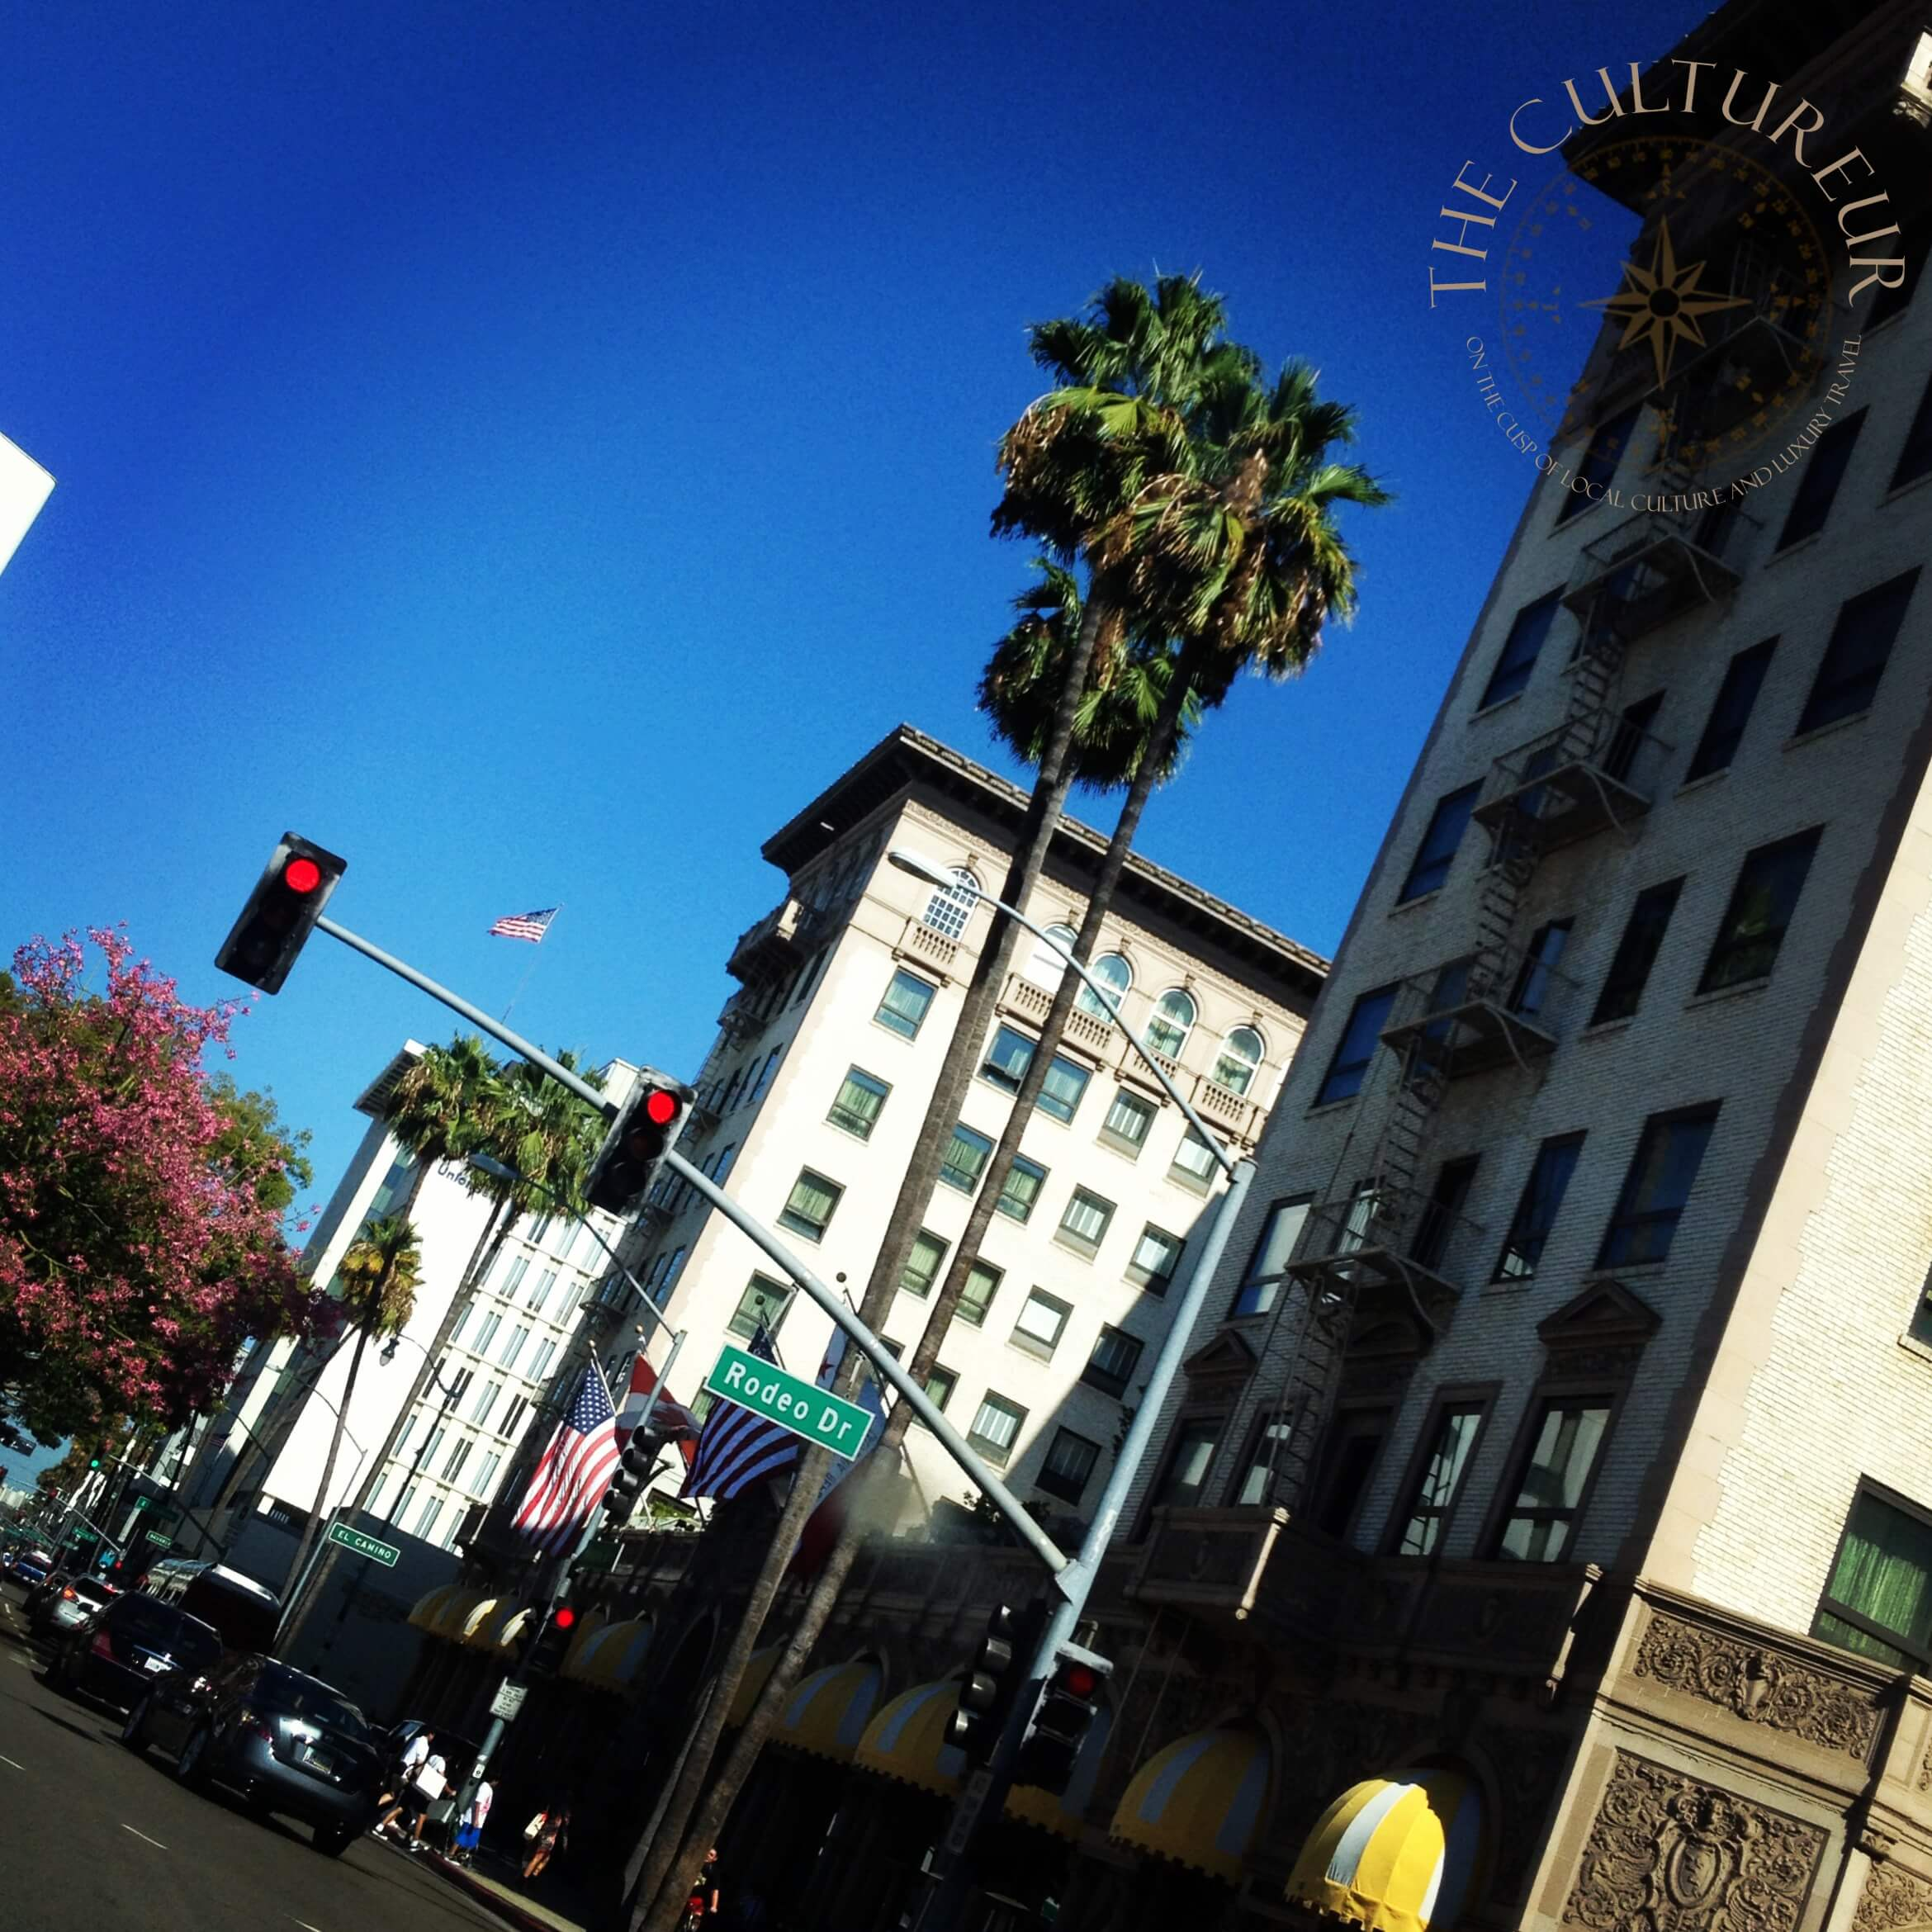 Rodeo Drive (celebrity free in this shot!)